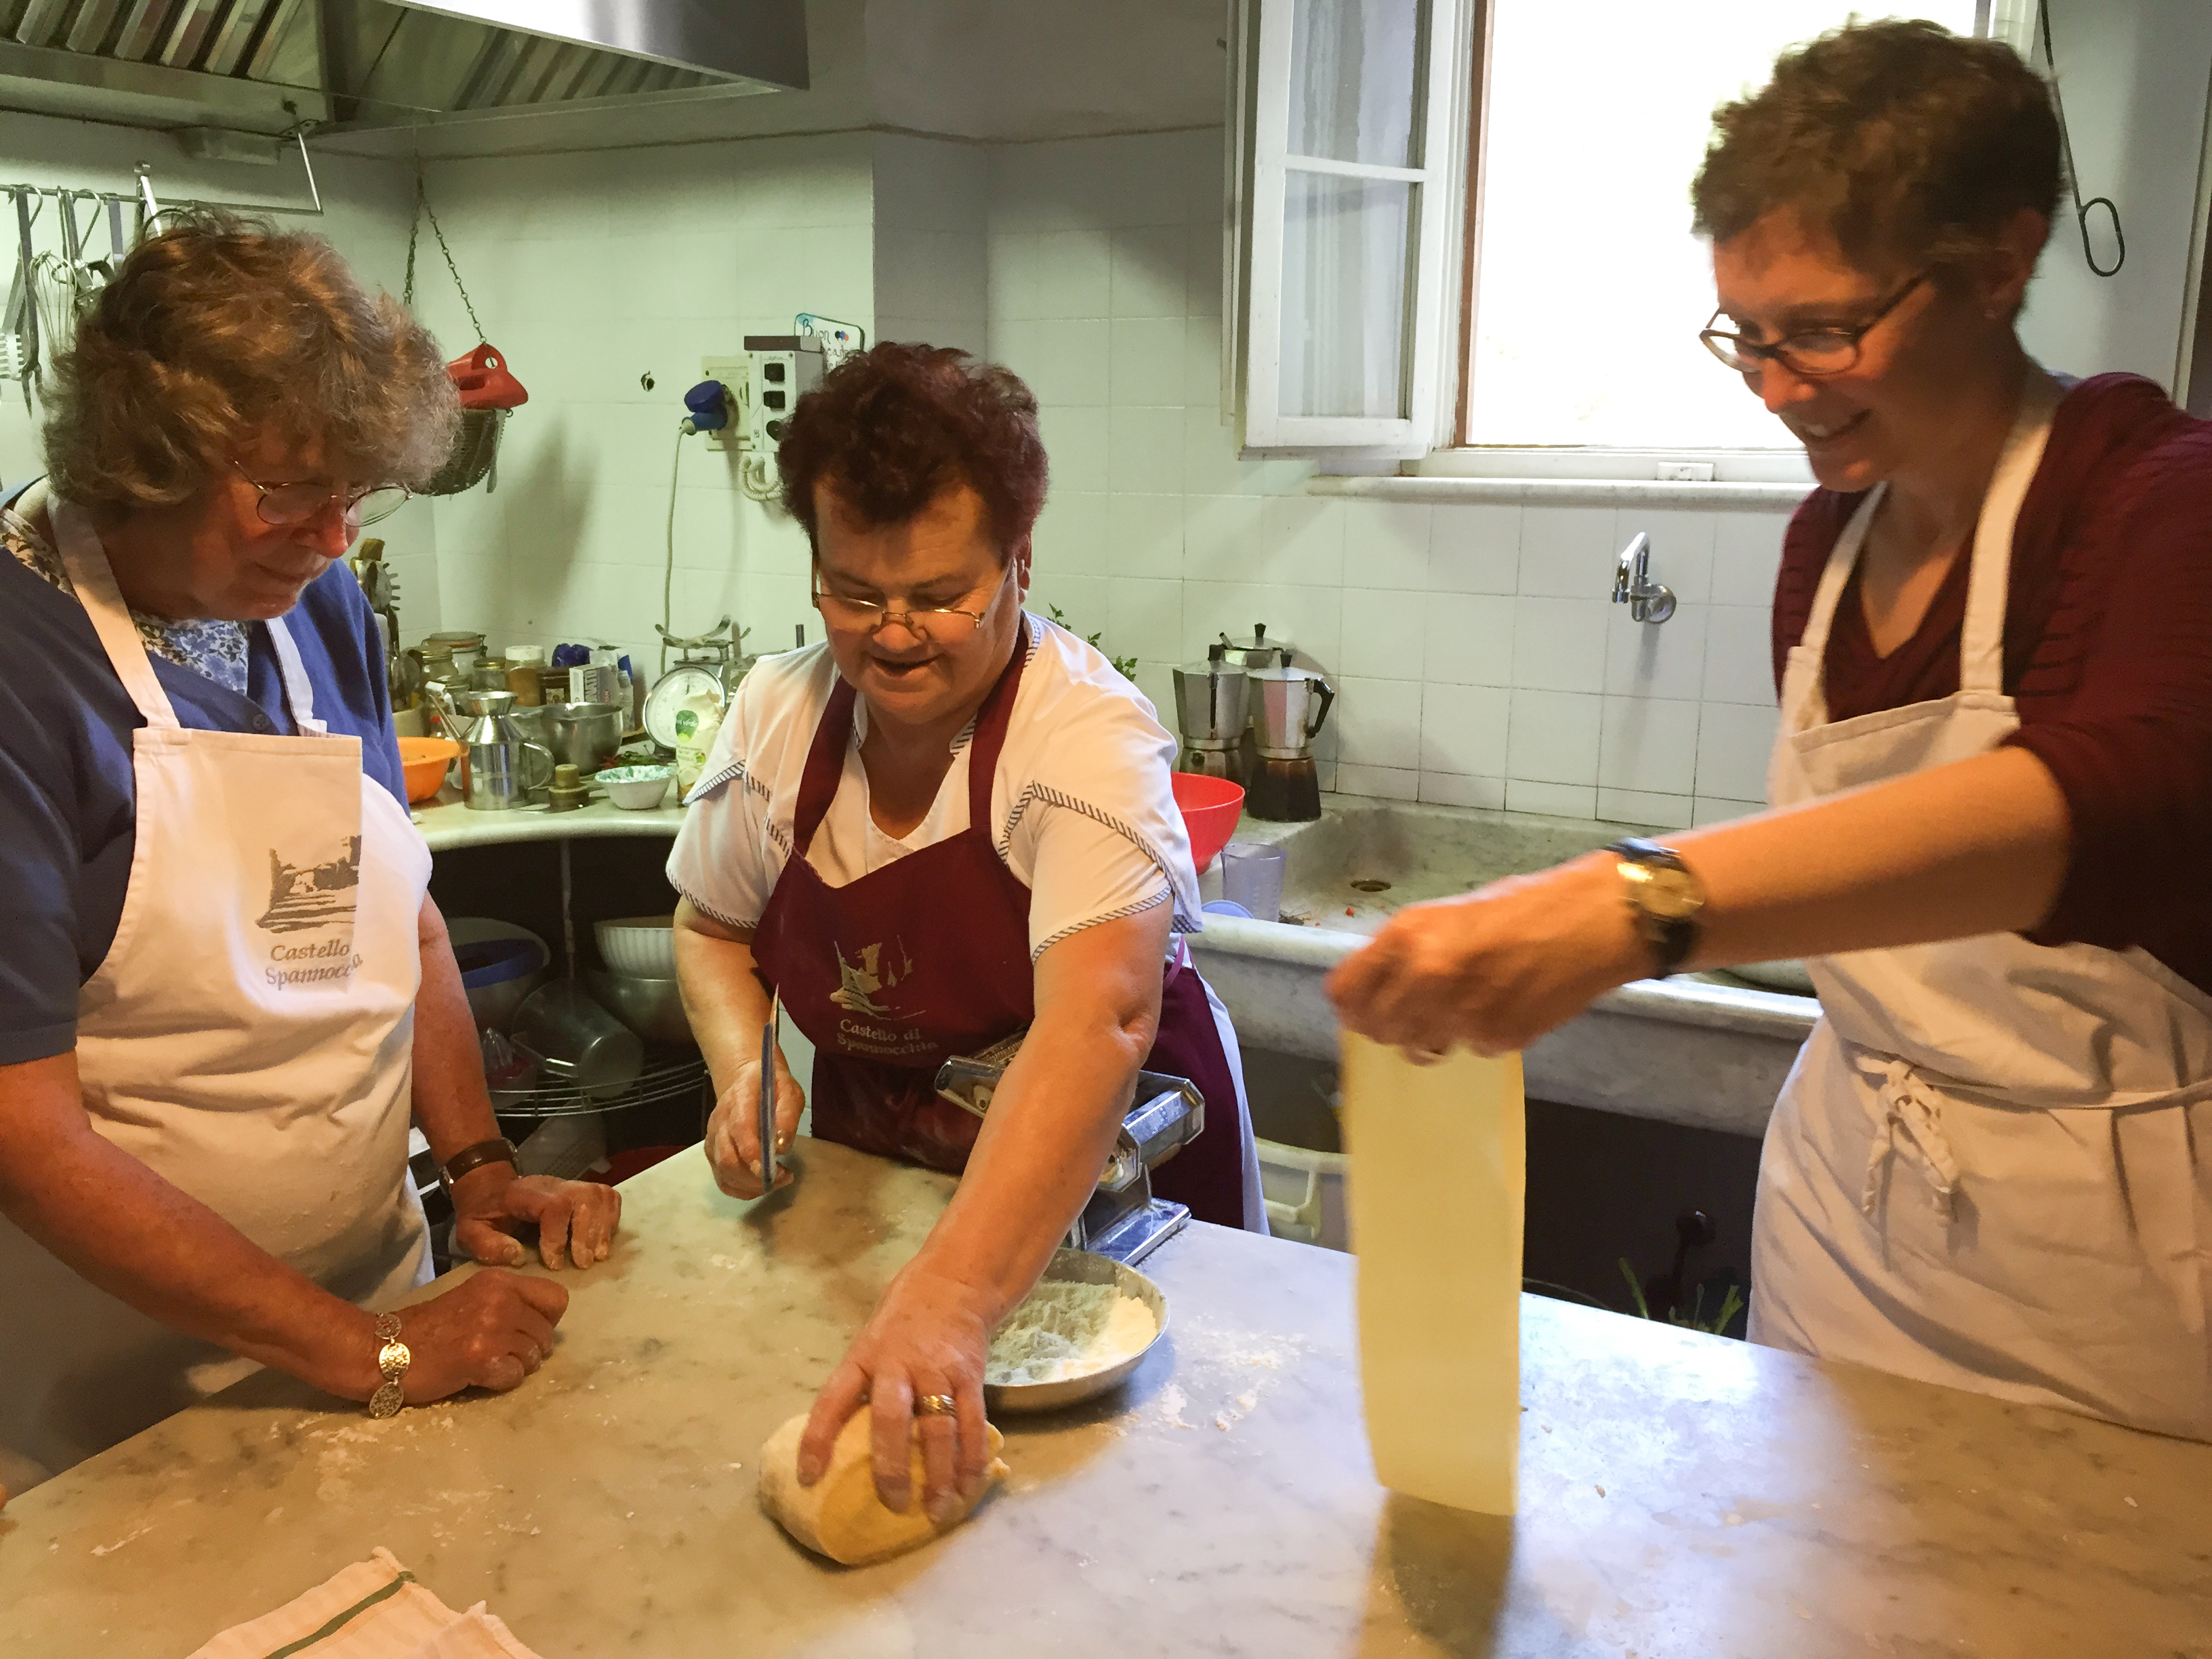 cooking class at Spannocchia